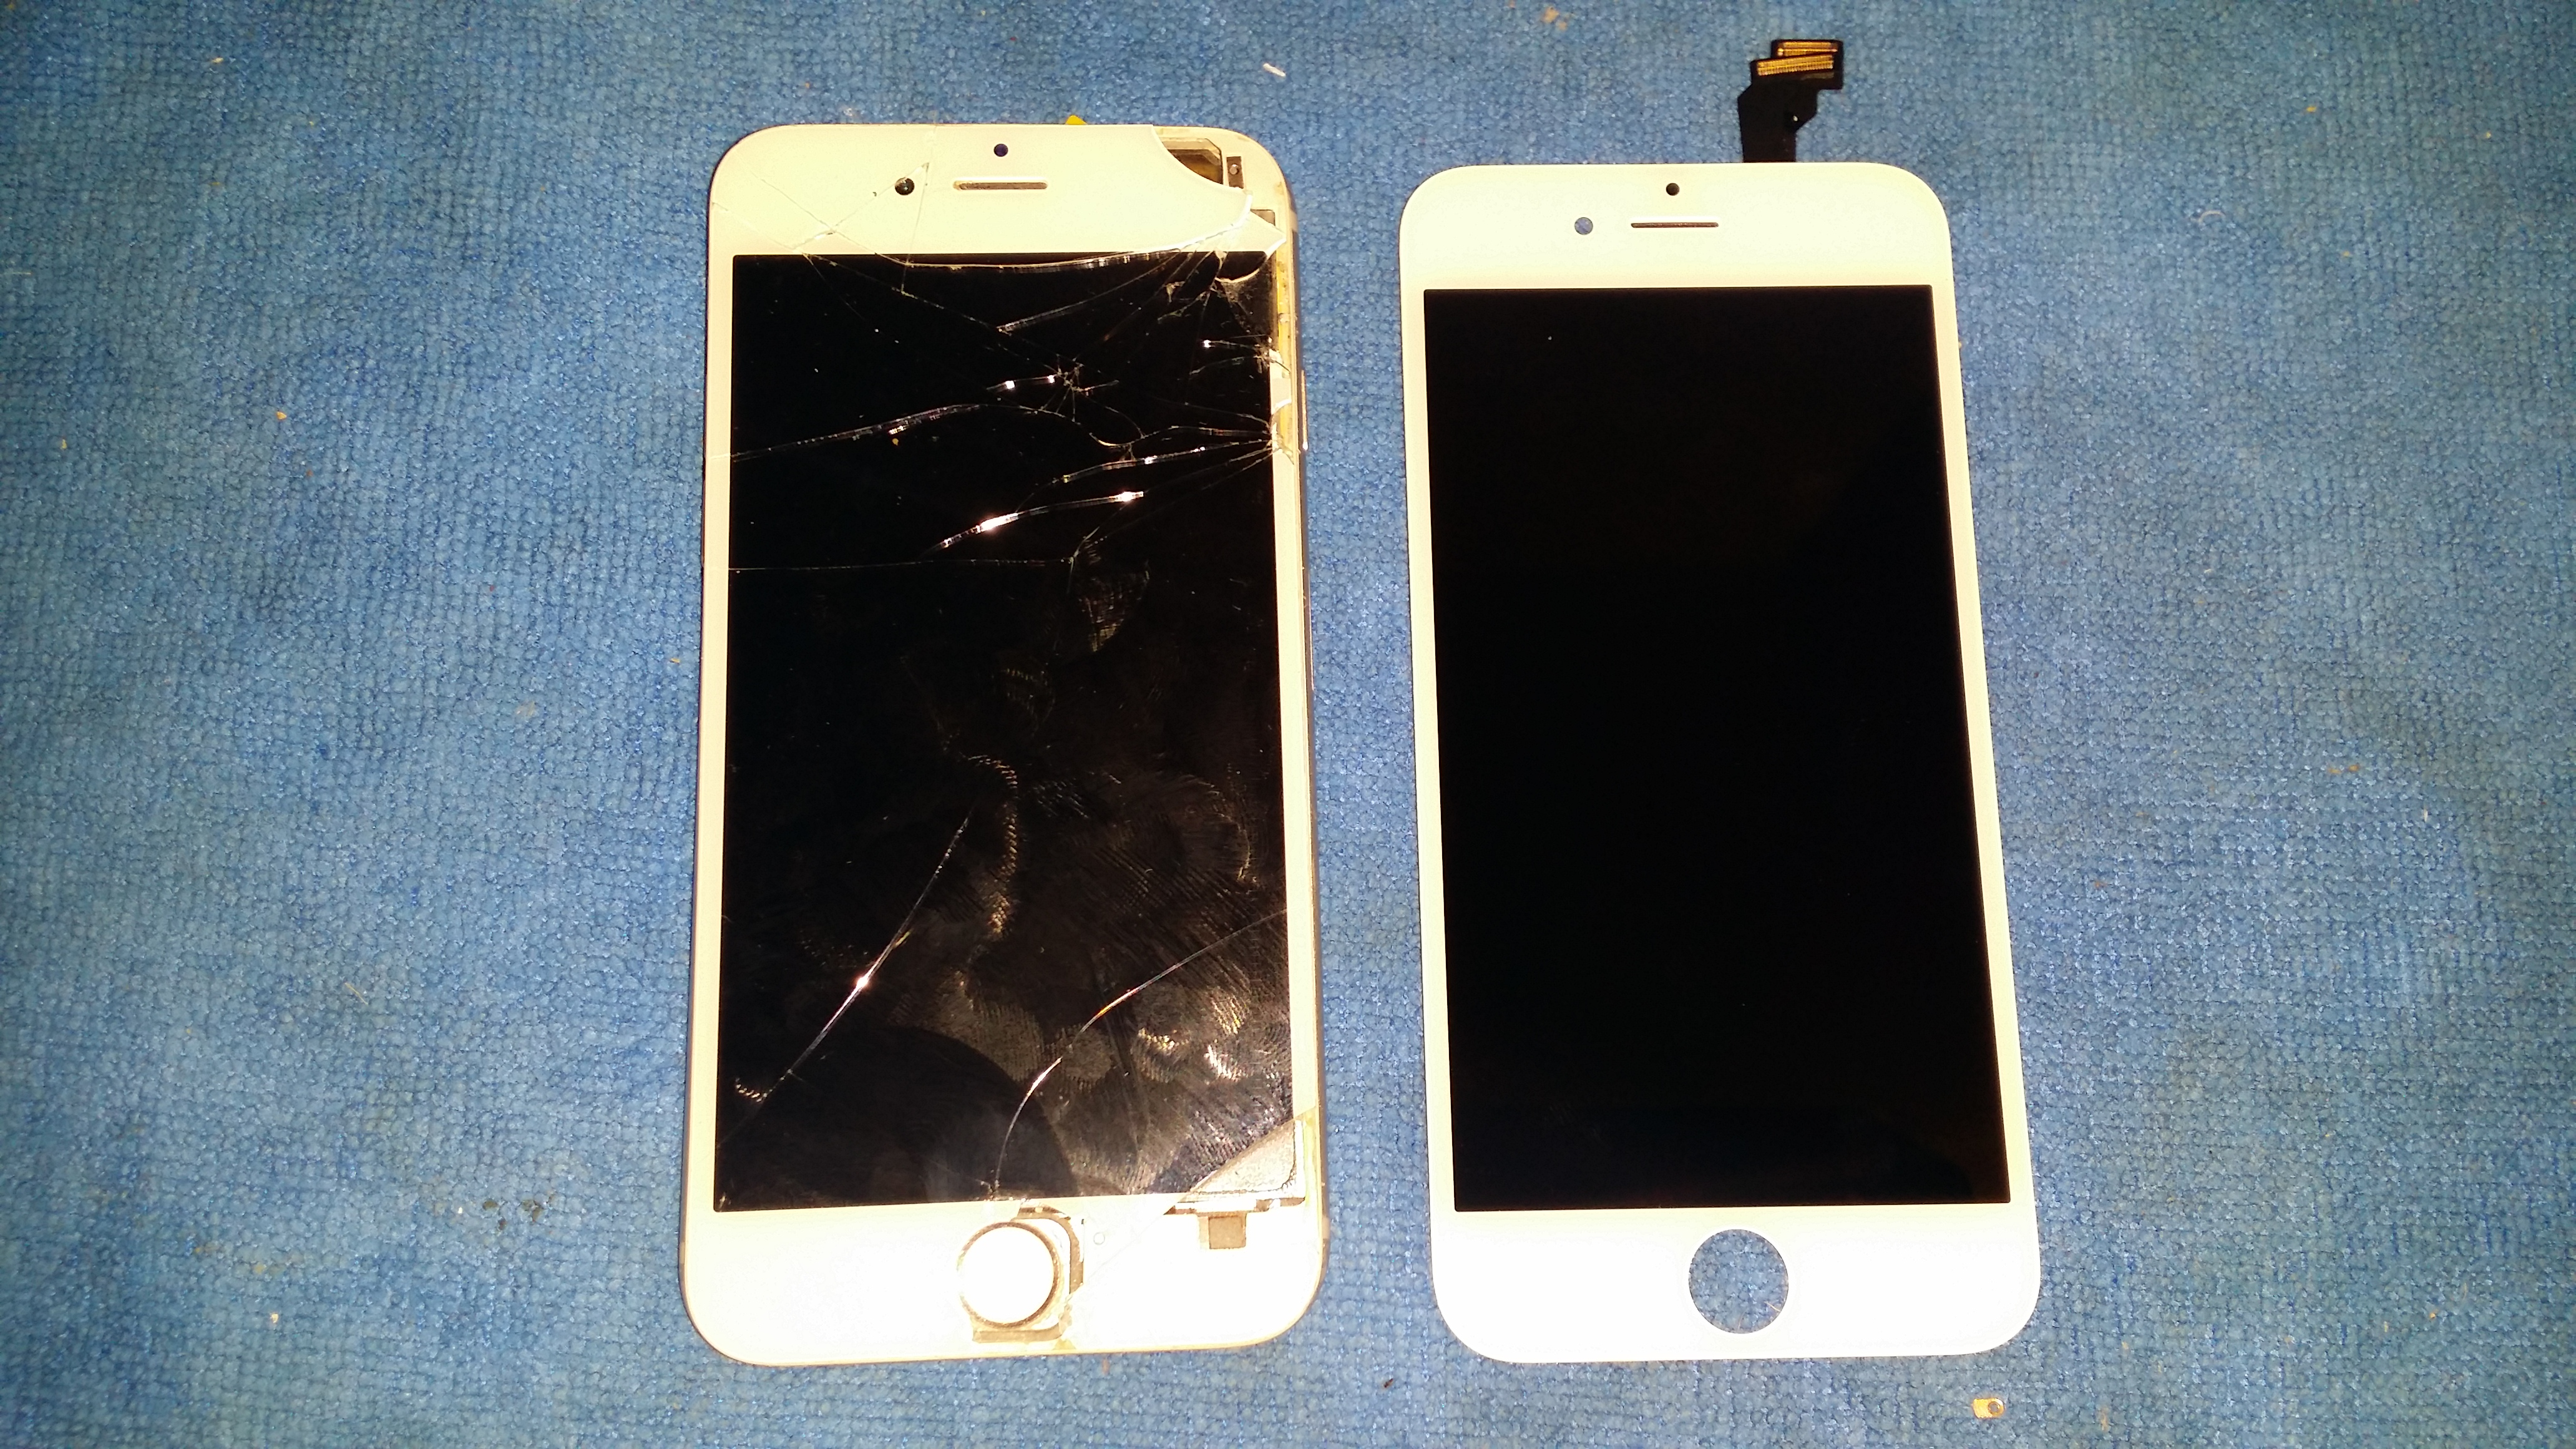 Remplacement cran iphone 6 2 expert mobiles - Reparation telephone lorient ...